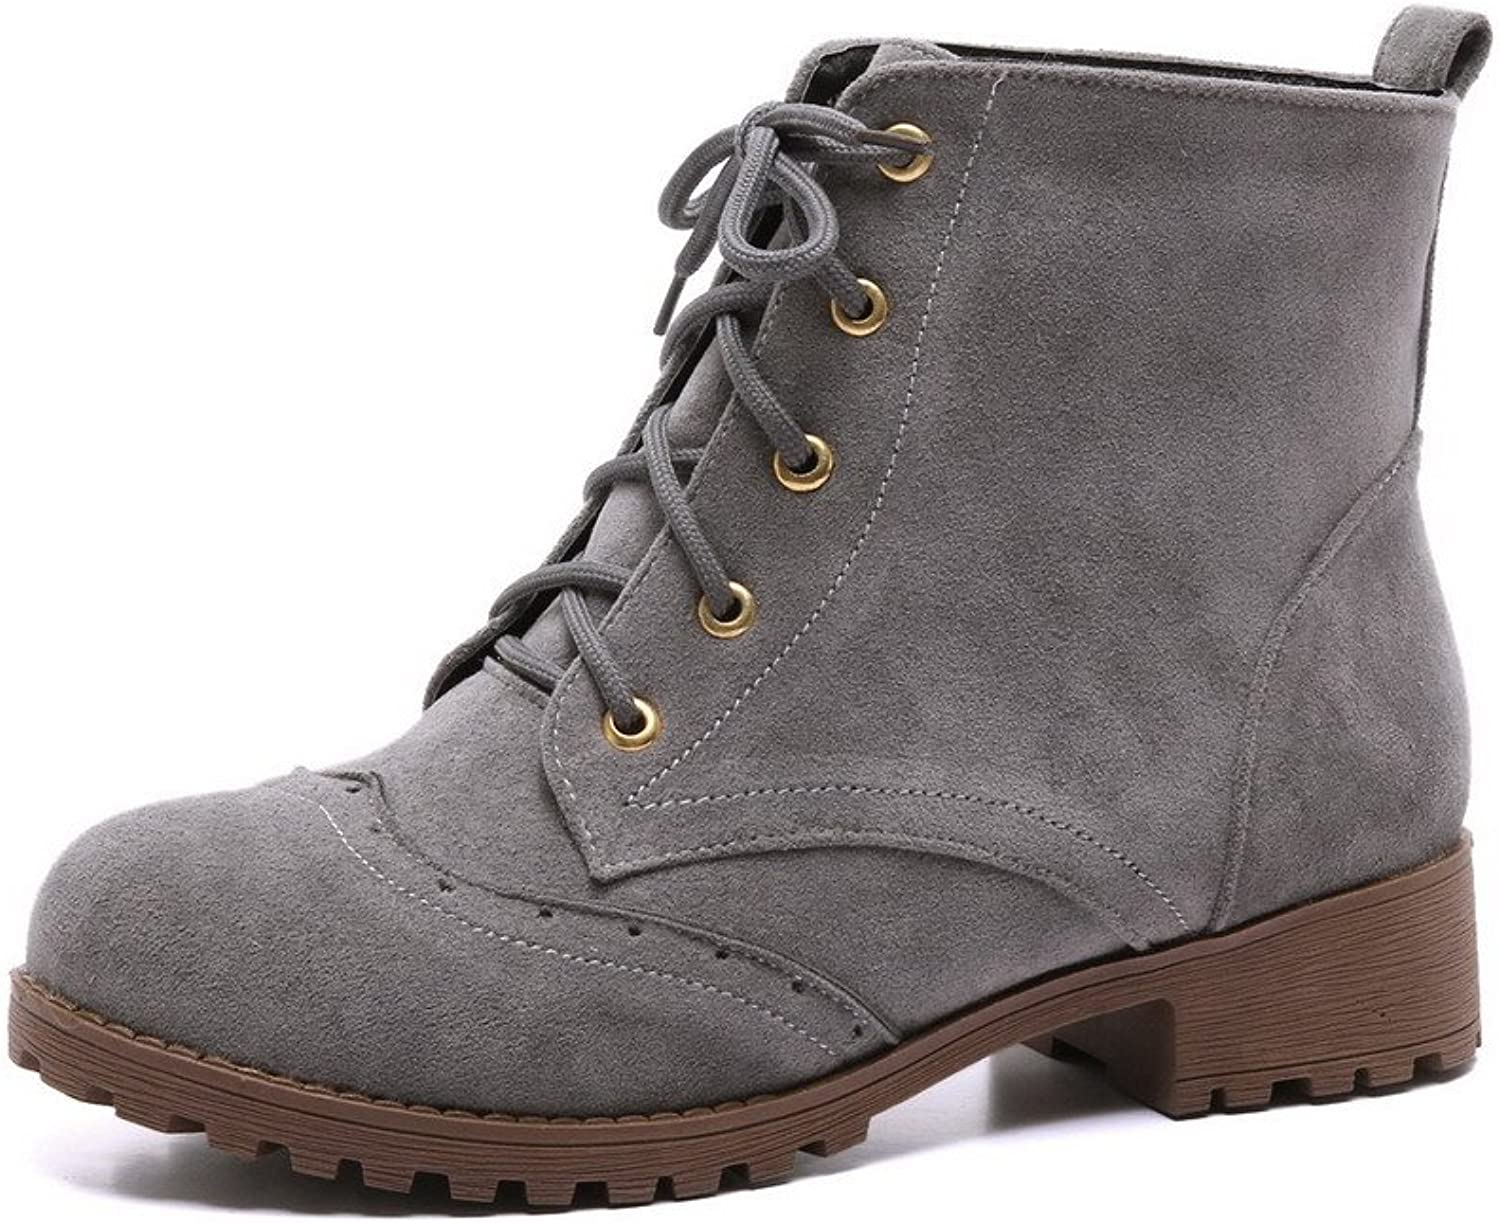 AmoonyFashion Women's Low-Heels Frosted Low-top Solid Lace-up Boots